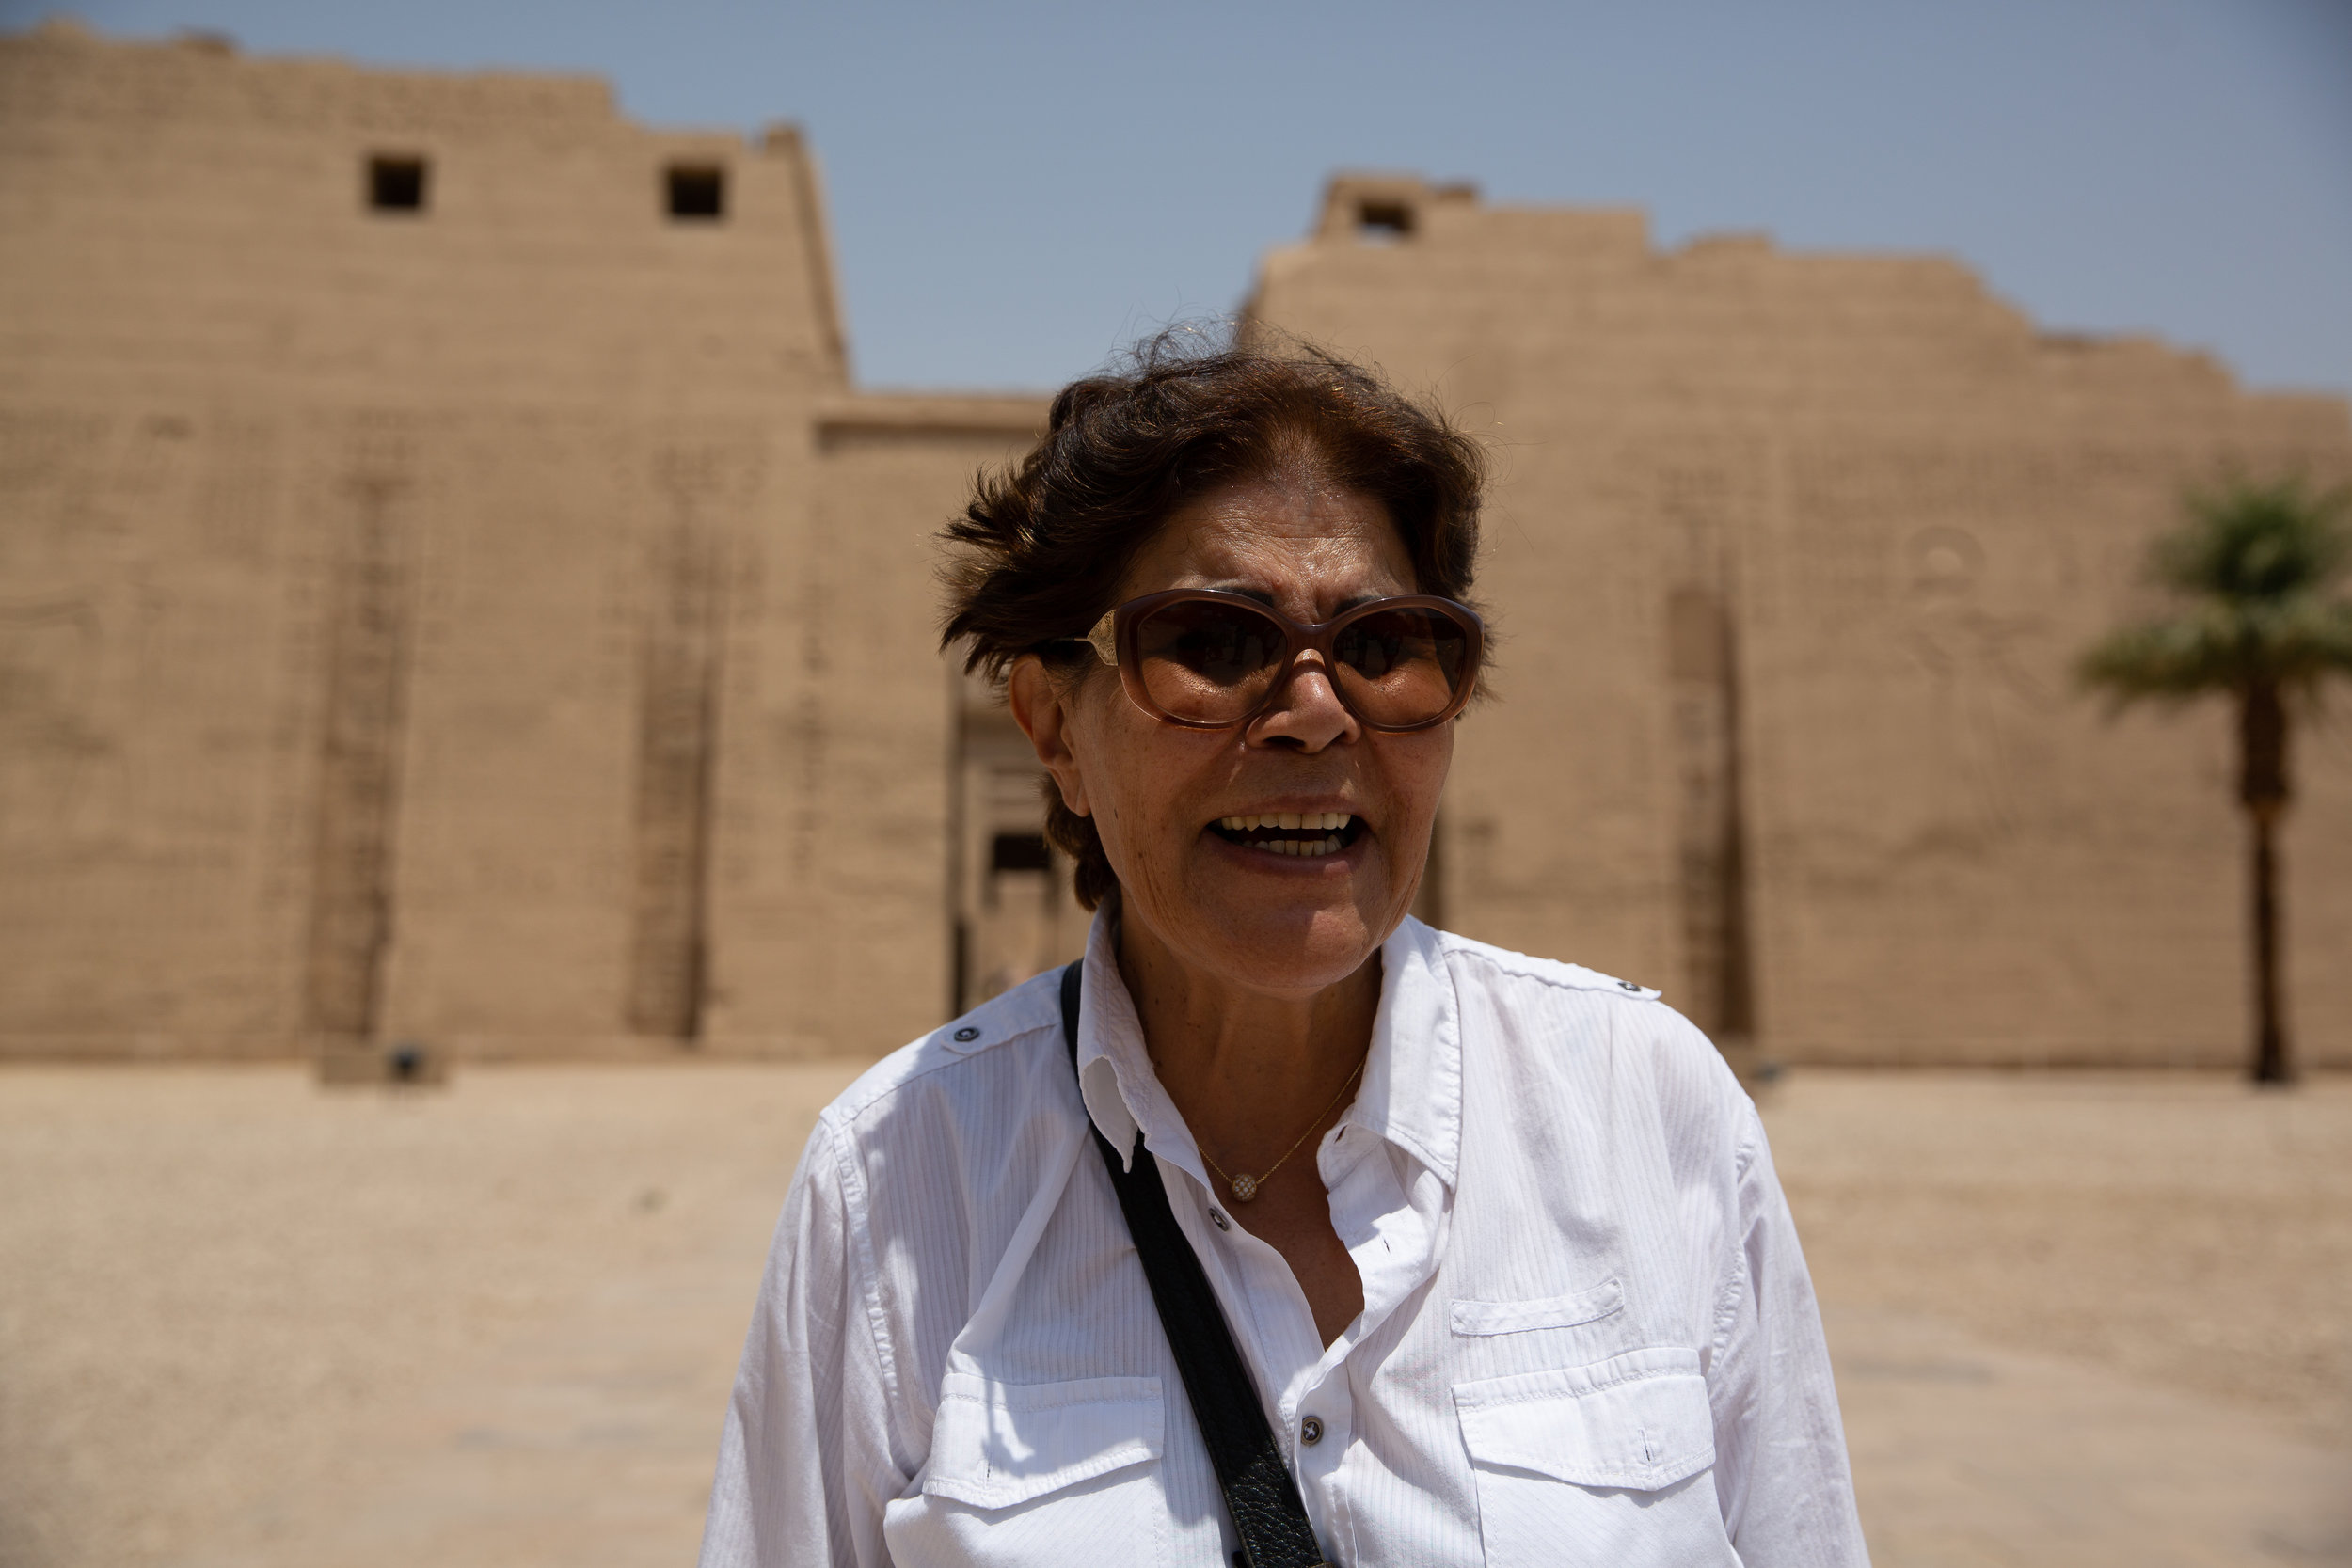 Our Egyptian expert, Toni, Medinet Habu, Luxor - Egypt - Wild Earth Expeditions